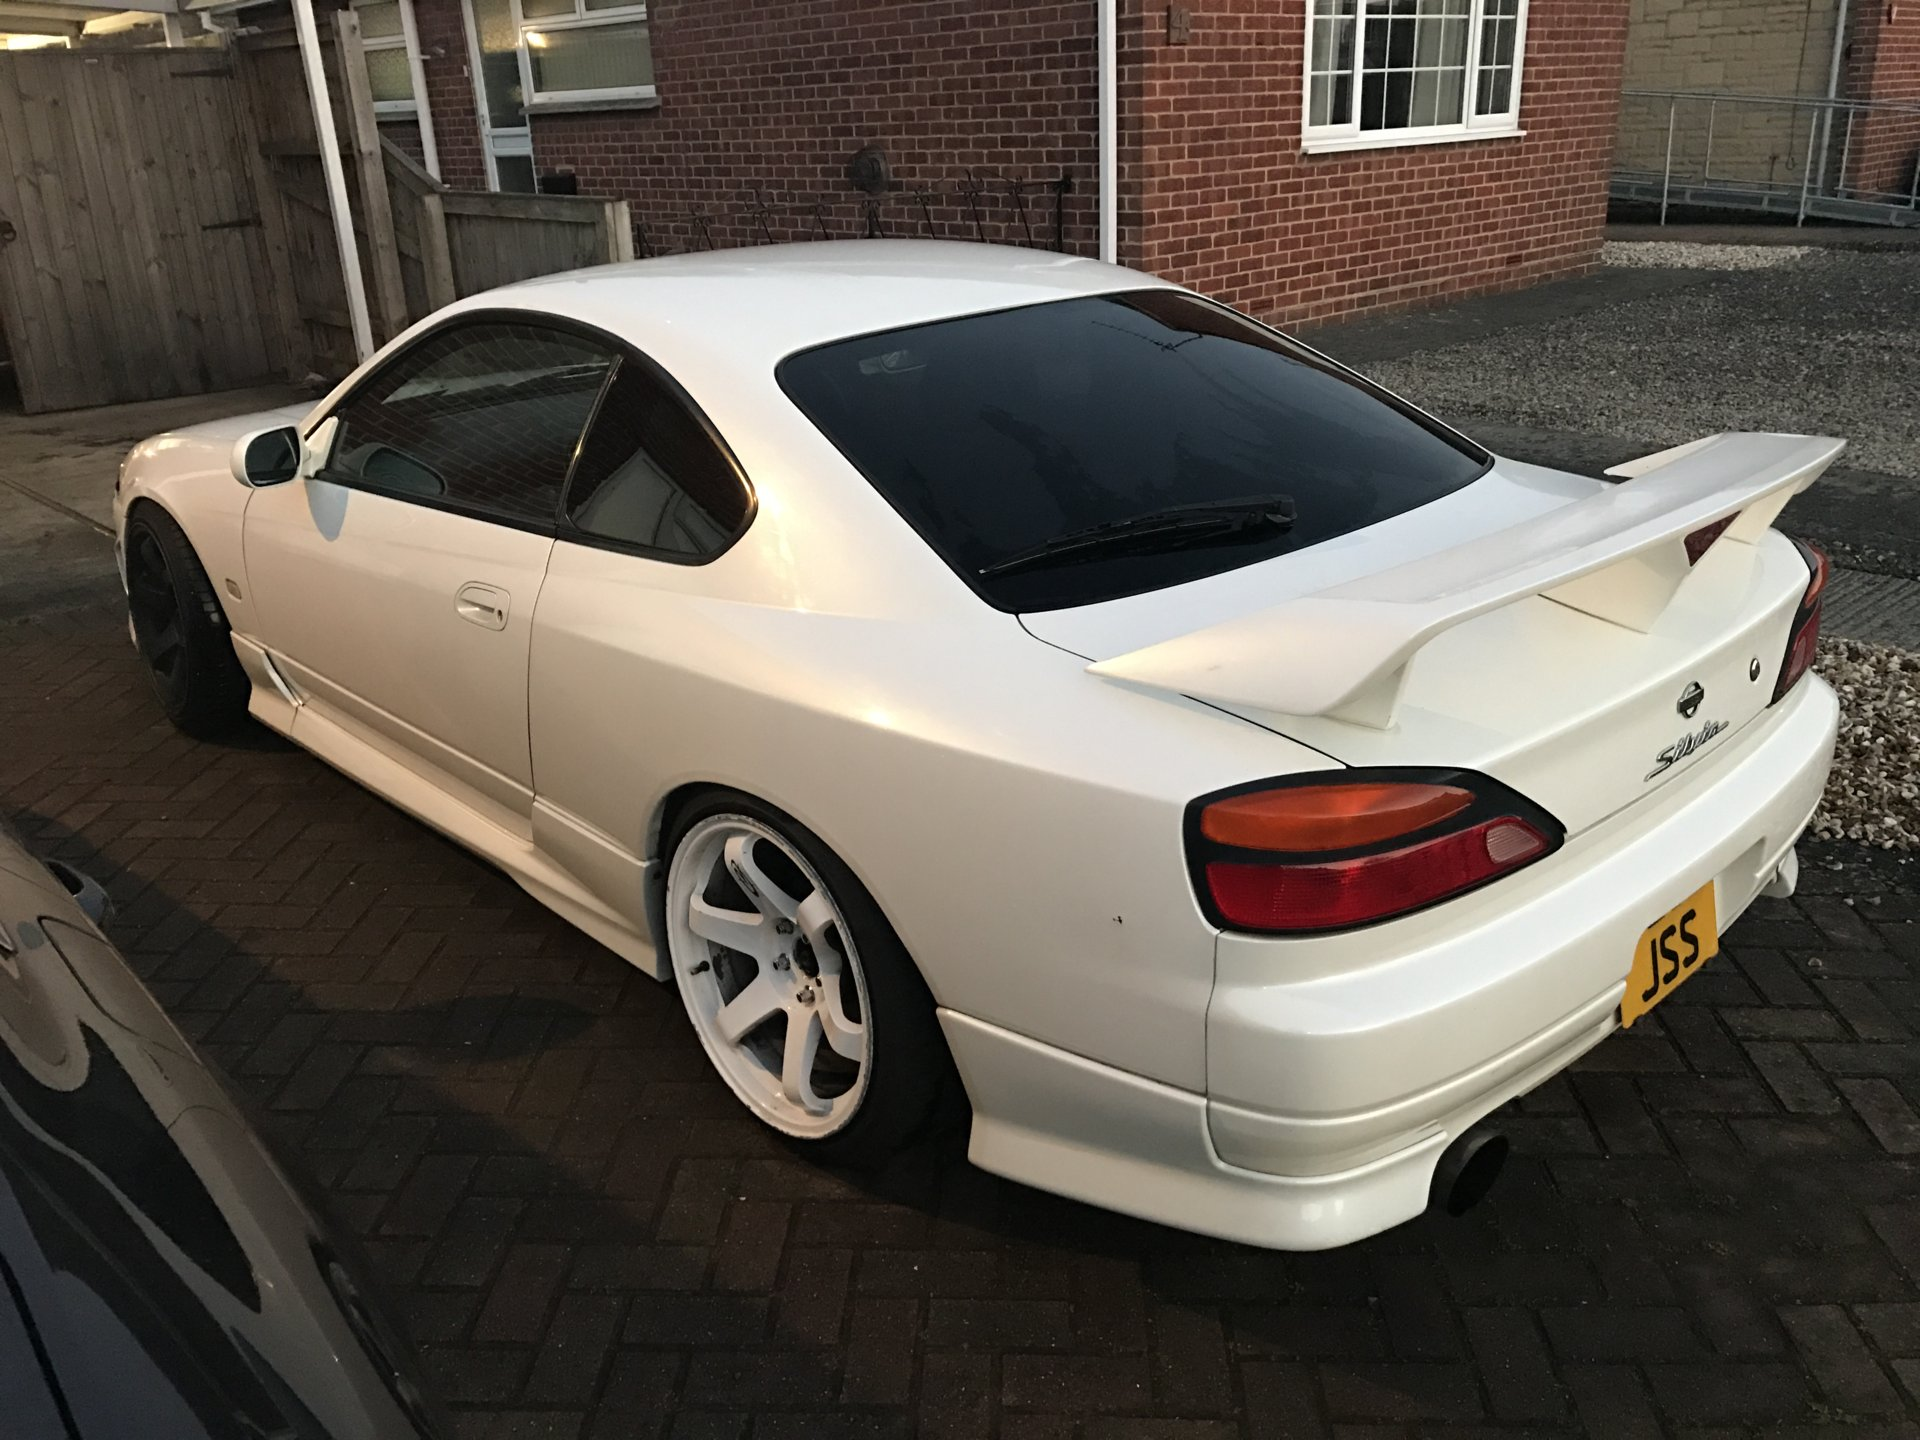 Nissan Silvia S15 Spec R Stock For Sale - 1999 Nissan...